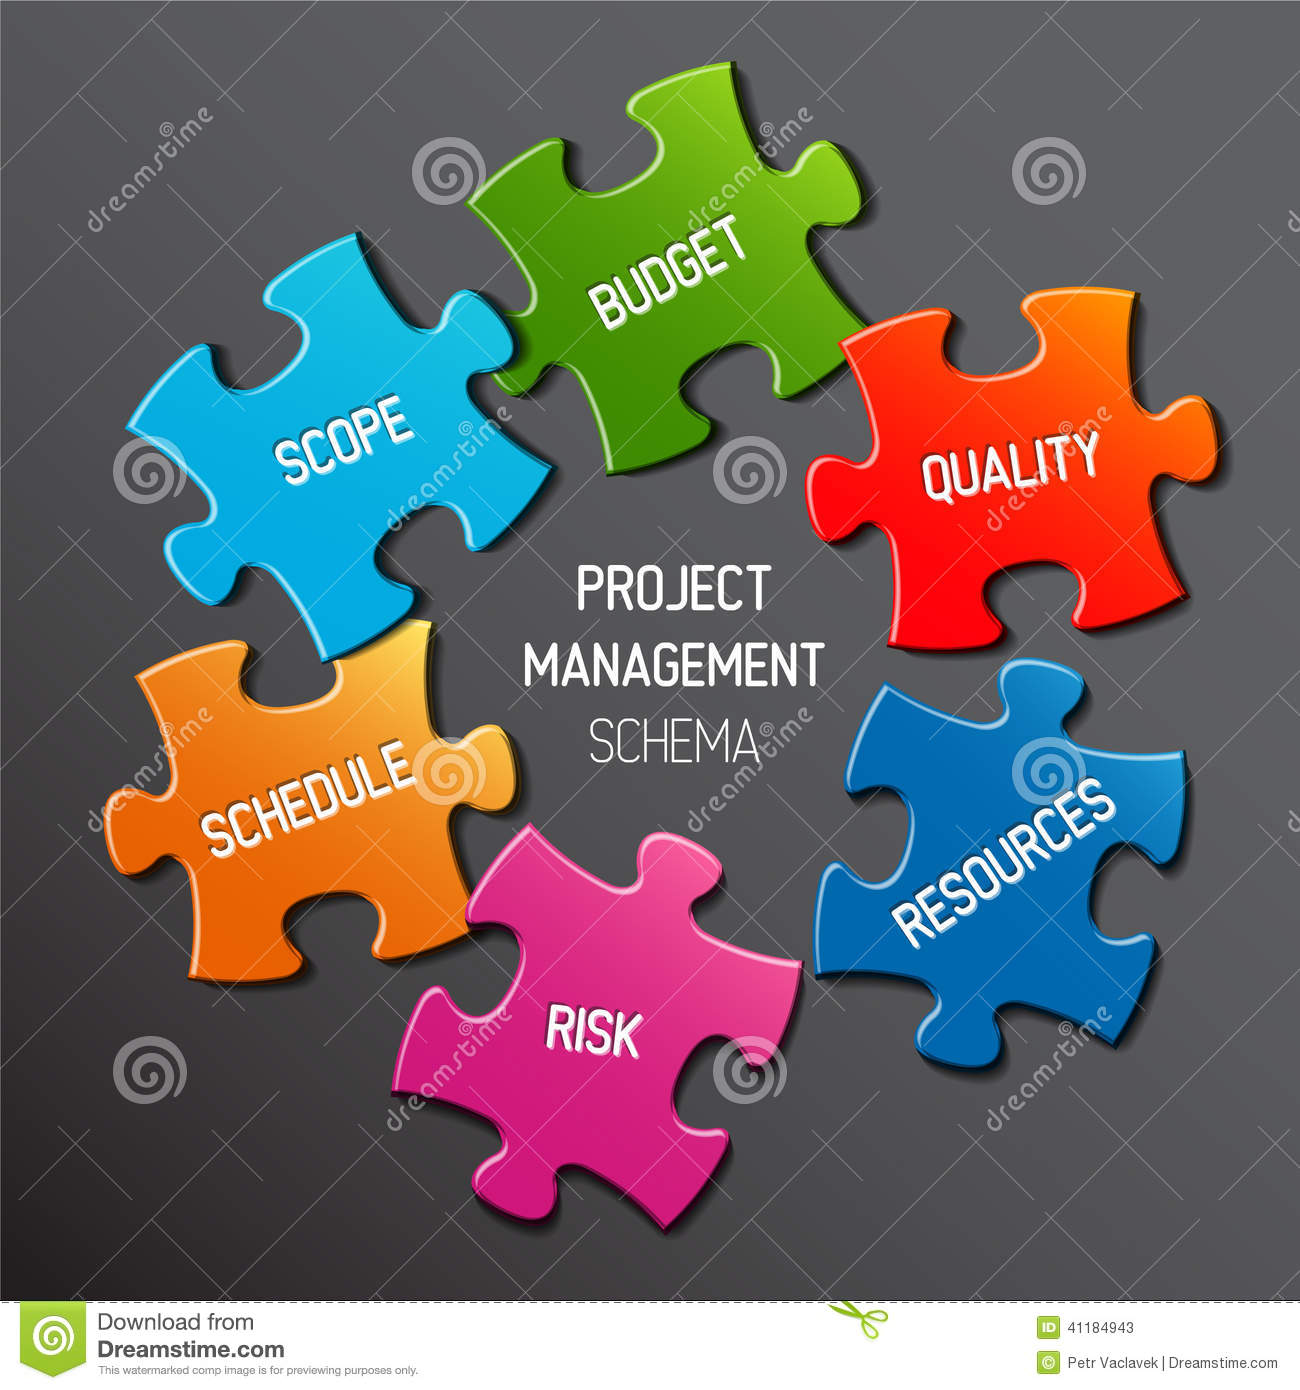 Project Management Diagram Scheme Concept Vector additionally B E F Aa E Eb C likewise Project Life Cycle B B Ff Af Ec Bc A additionally Steps Route To Market Excellence New Web moreover Xstrategy Scorecard   Pagespeed Ic Syoqcmtvlx. on 5 step implementation model diagram